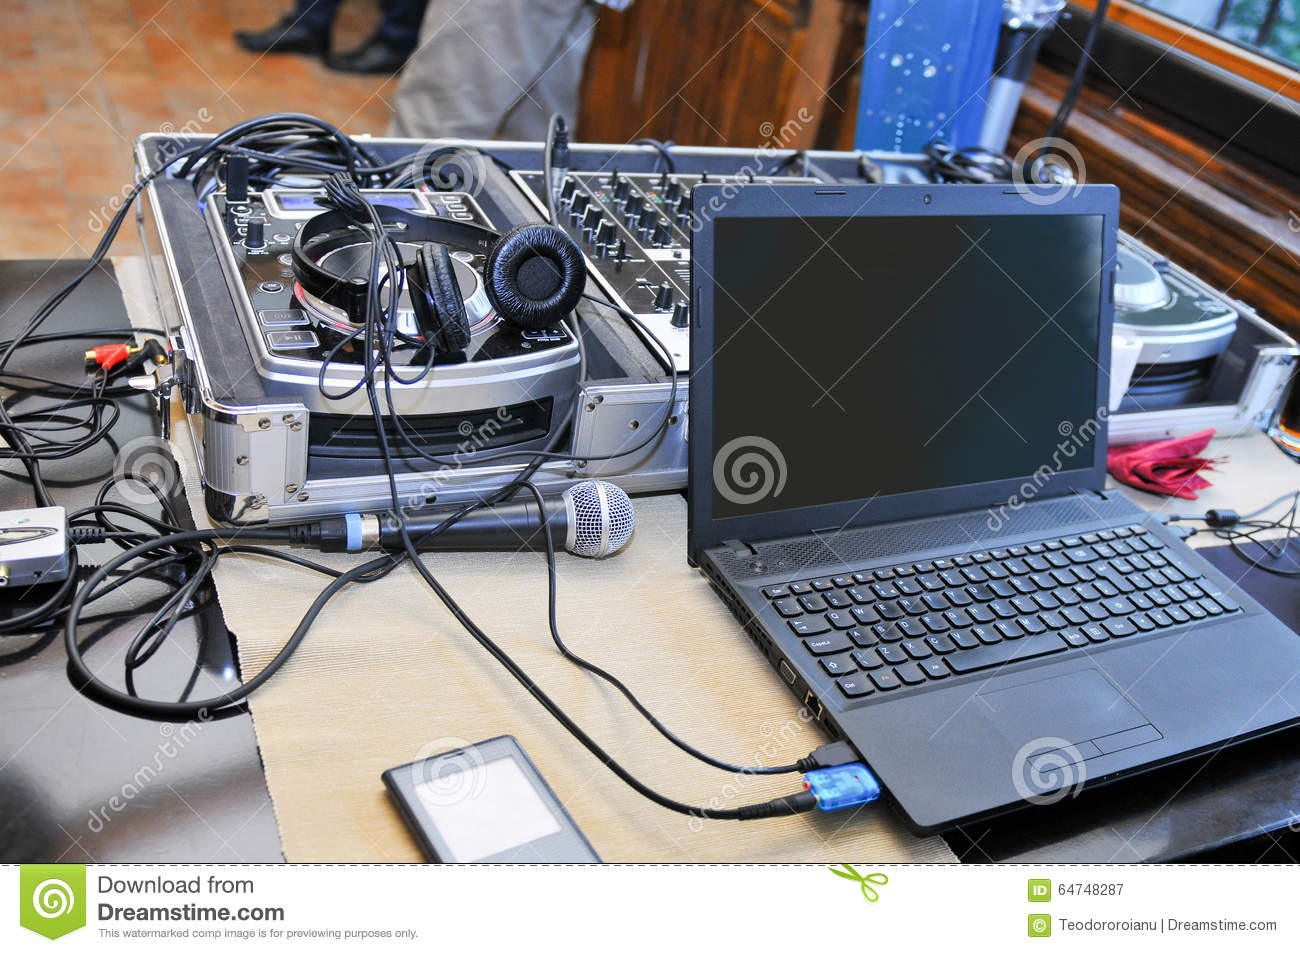 dj sound system stock image image of leisure board